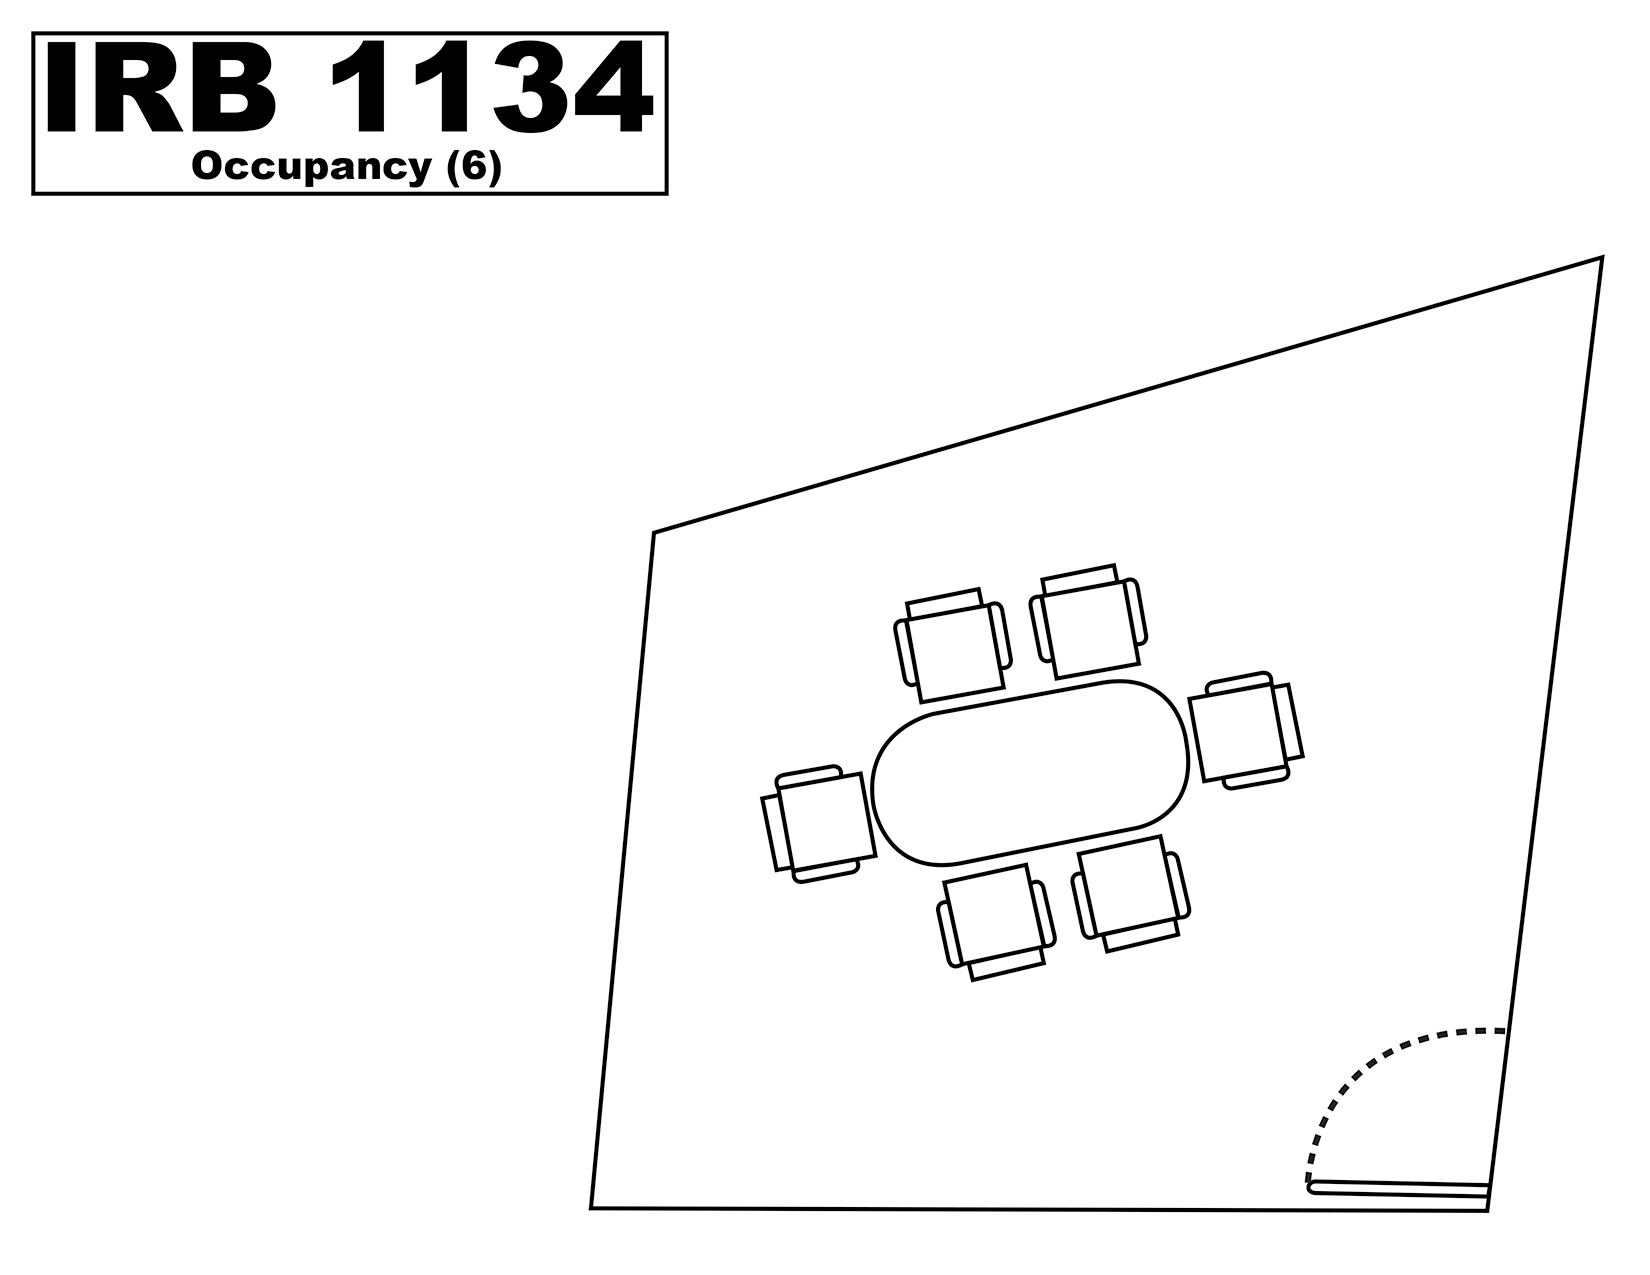 IRB1134 floorplan